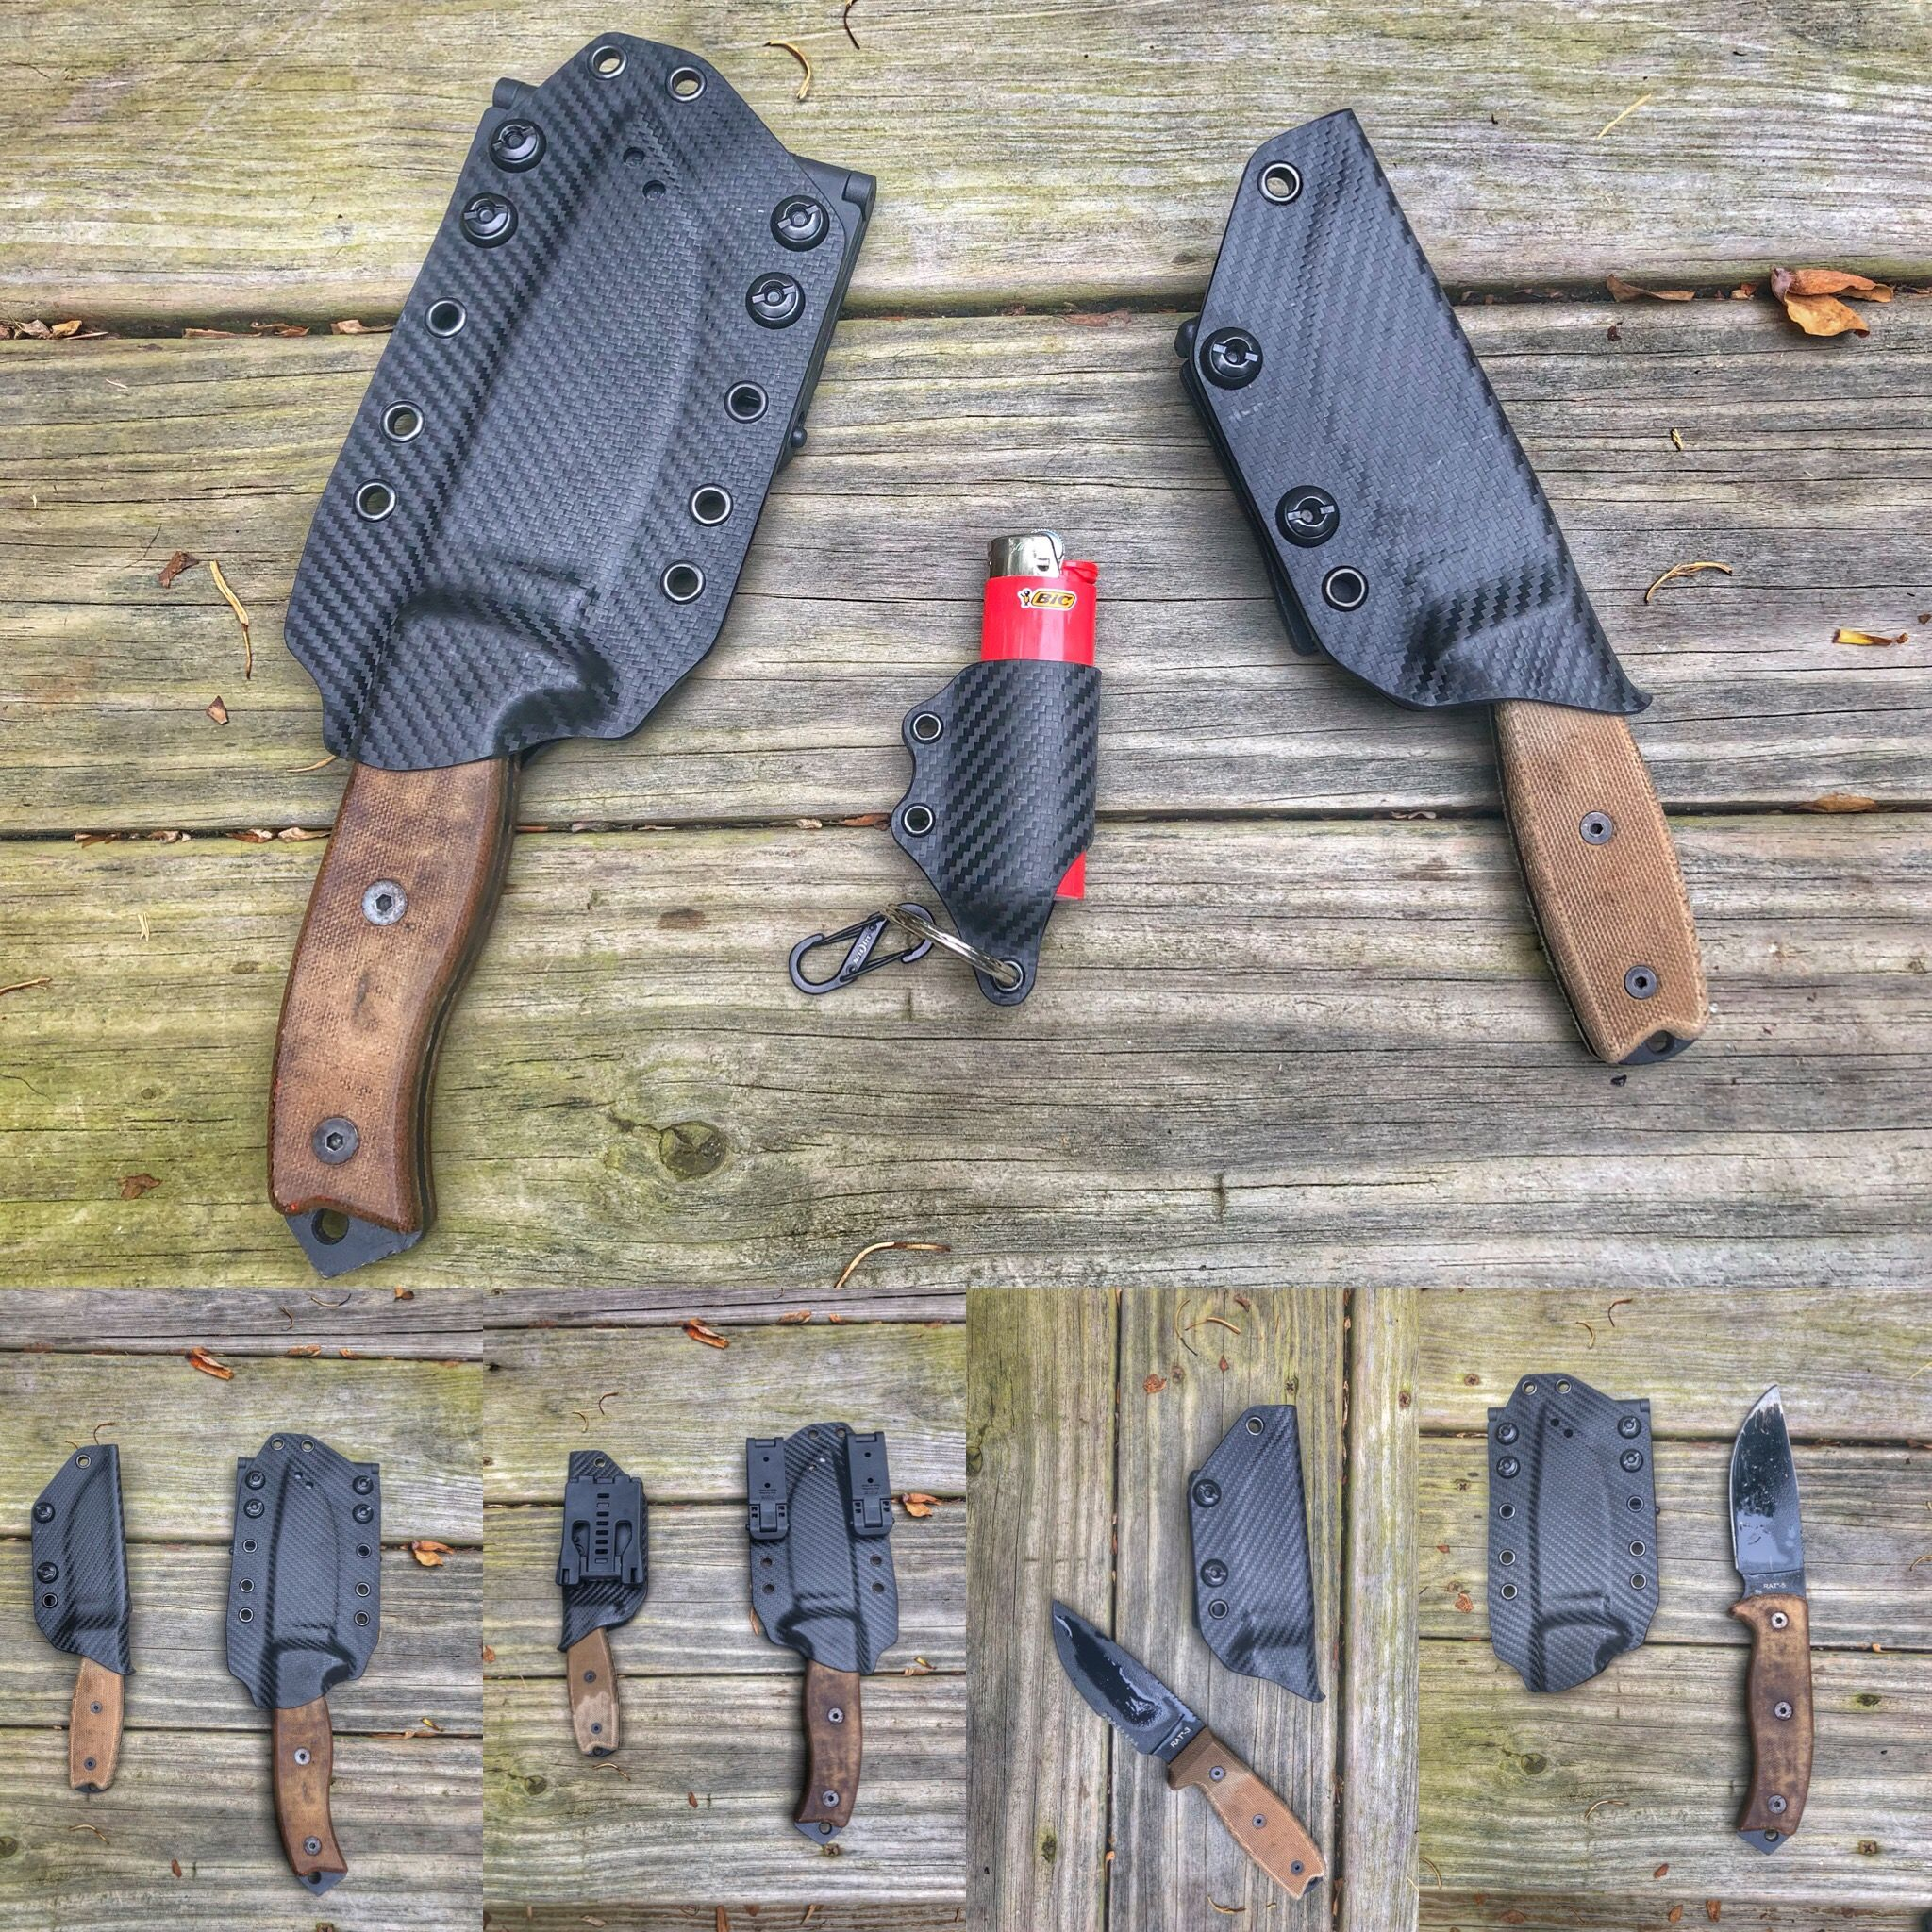 Finished Kydex Sheaths For A Client's Rat 3 And 5 Knives